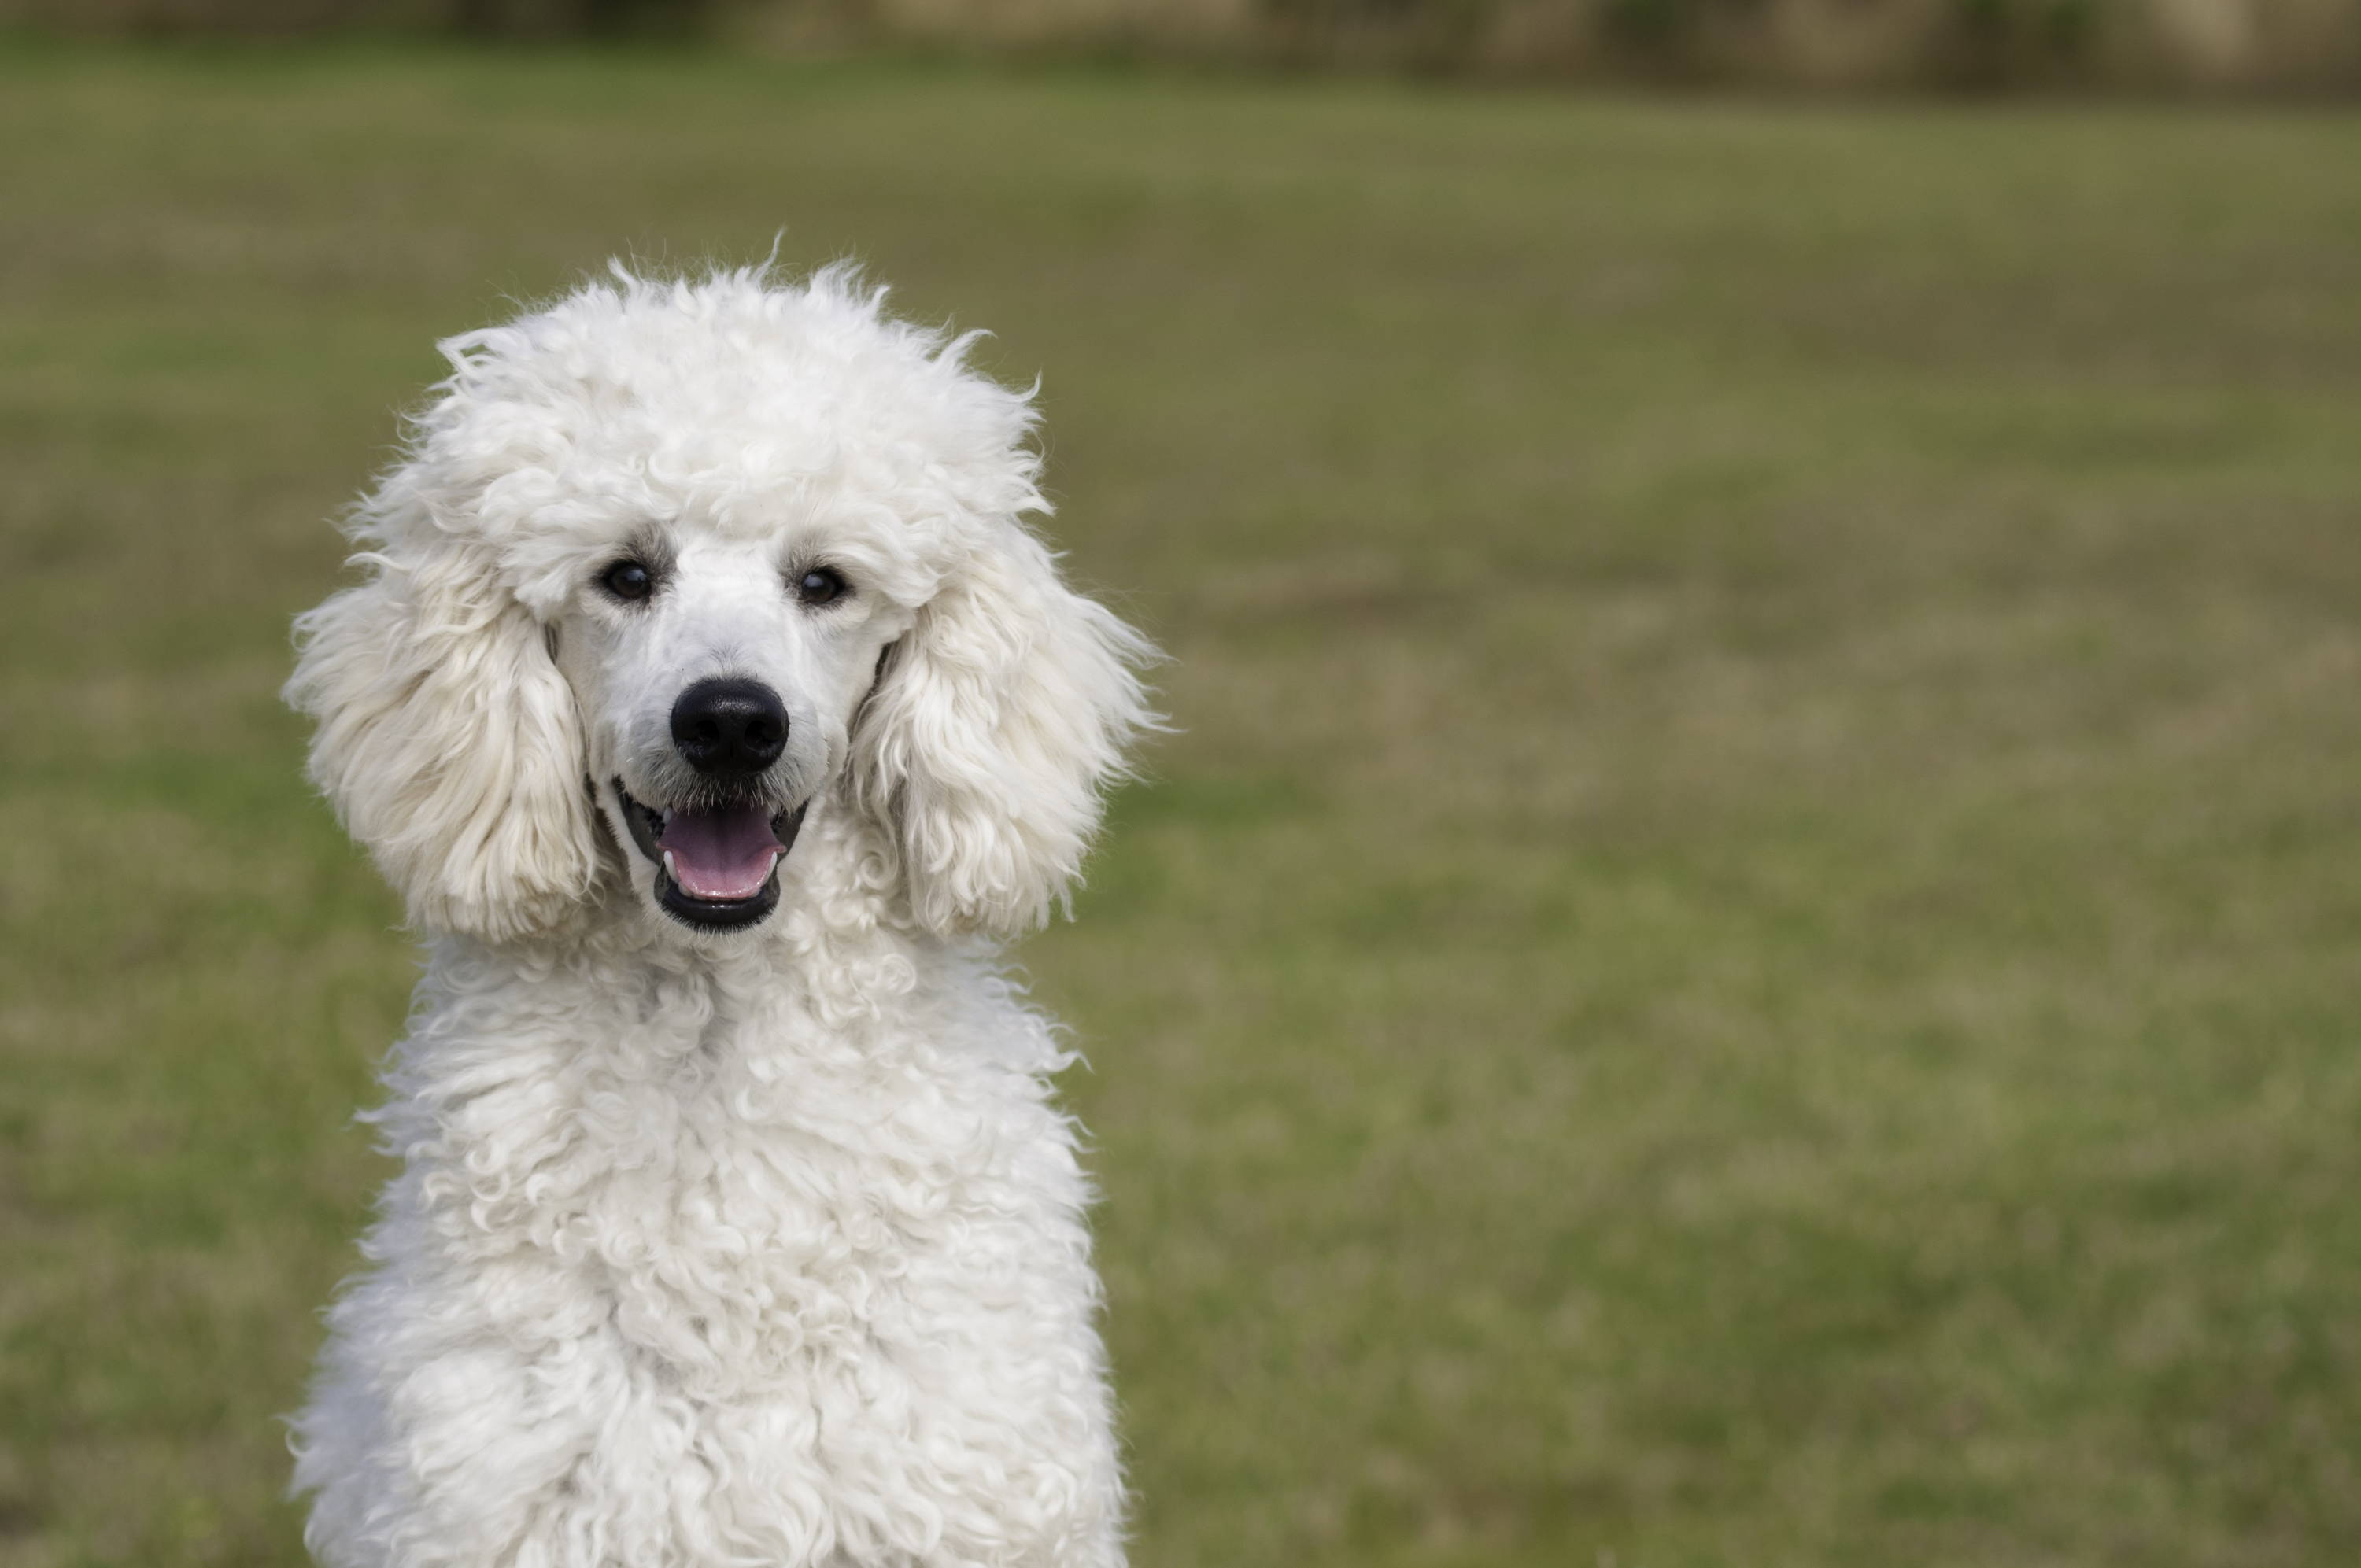 White poodle at park looking happy